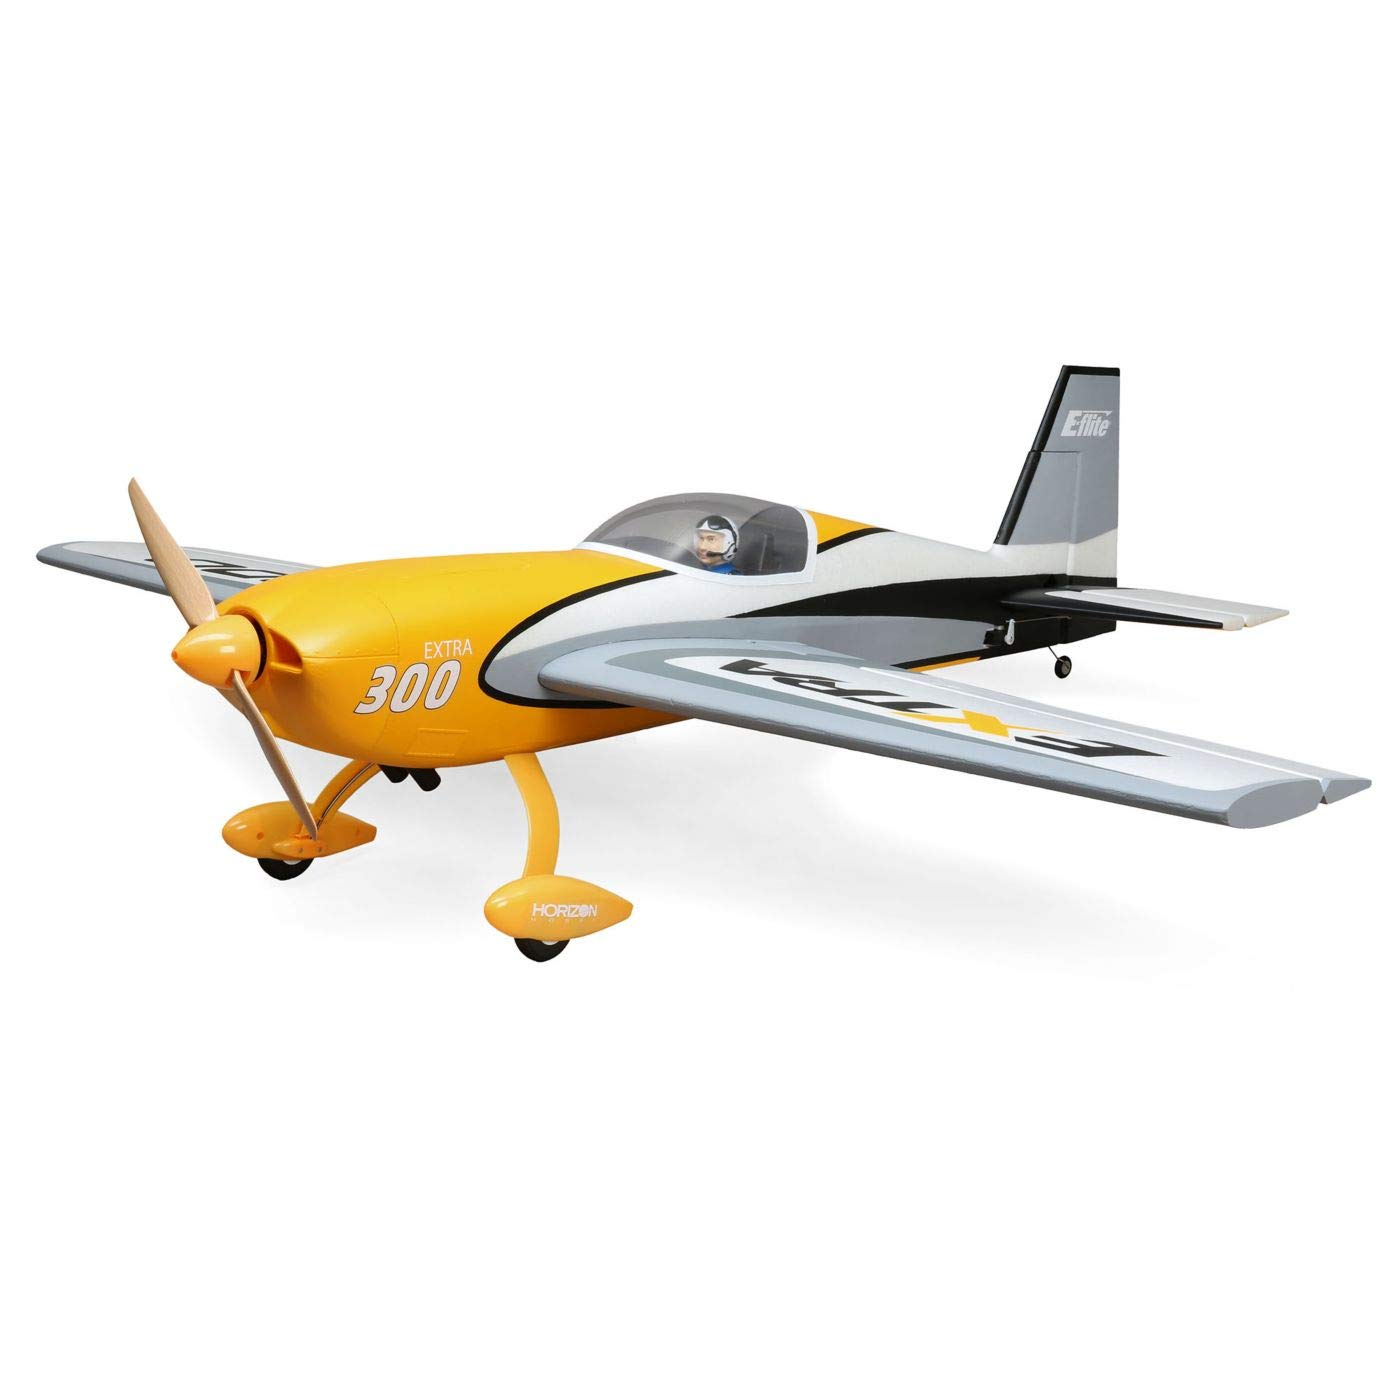 E-flite RC Airplane Extra 300 3D 1.3m BNF Basic (Transmitter, Battery and Charger not Included) with AS3X and Safe Select, EFL11550